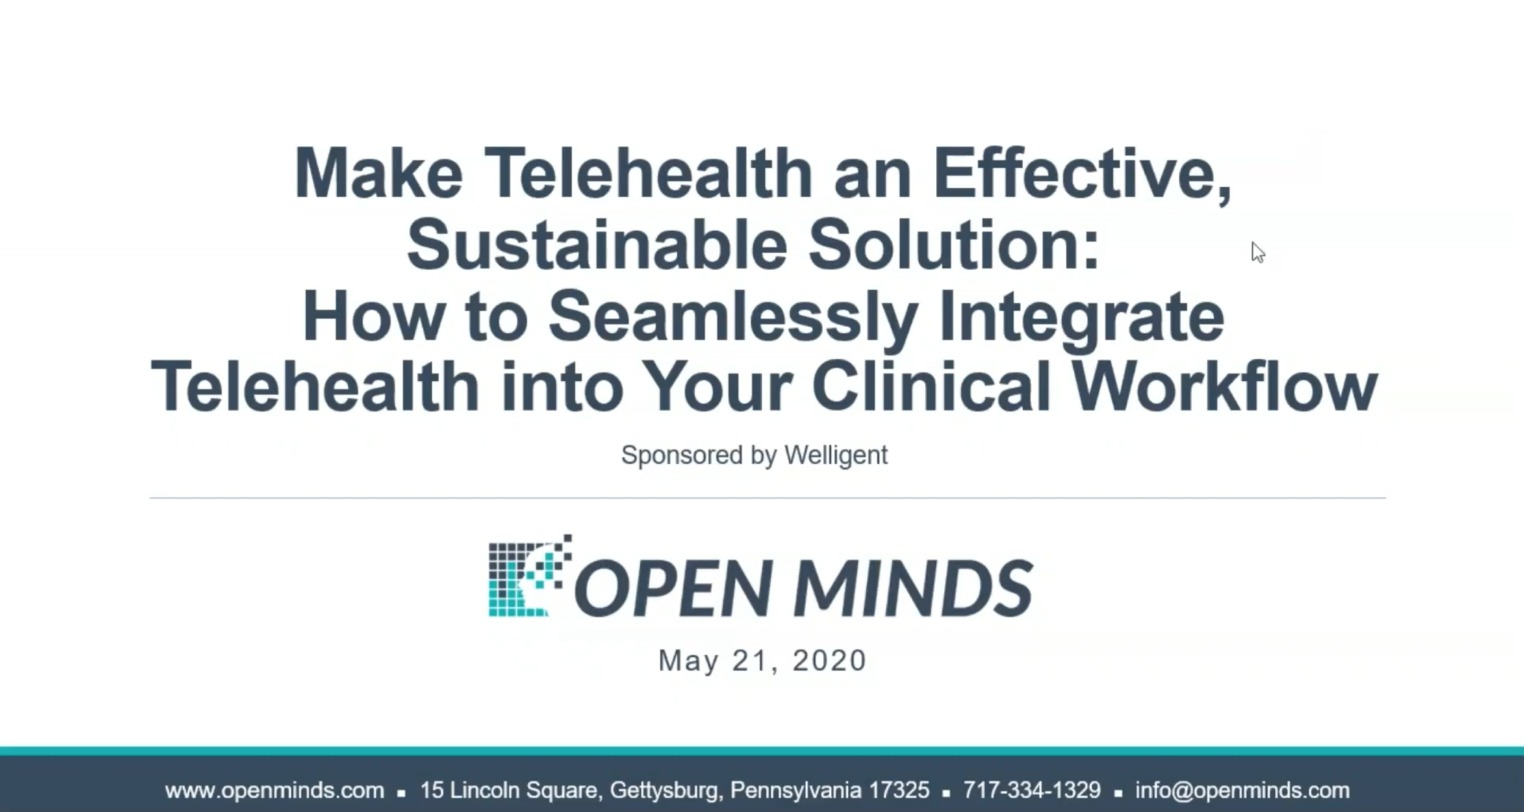 [Webinar] Seamlessly Integrate Telehealth Into Your Clinical Workflow